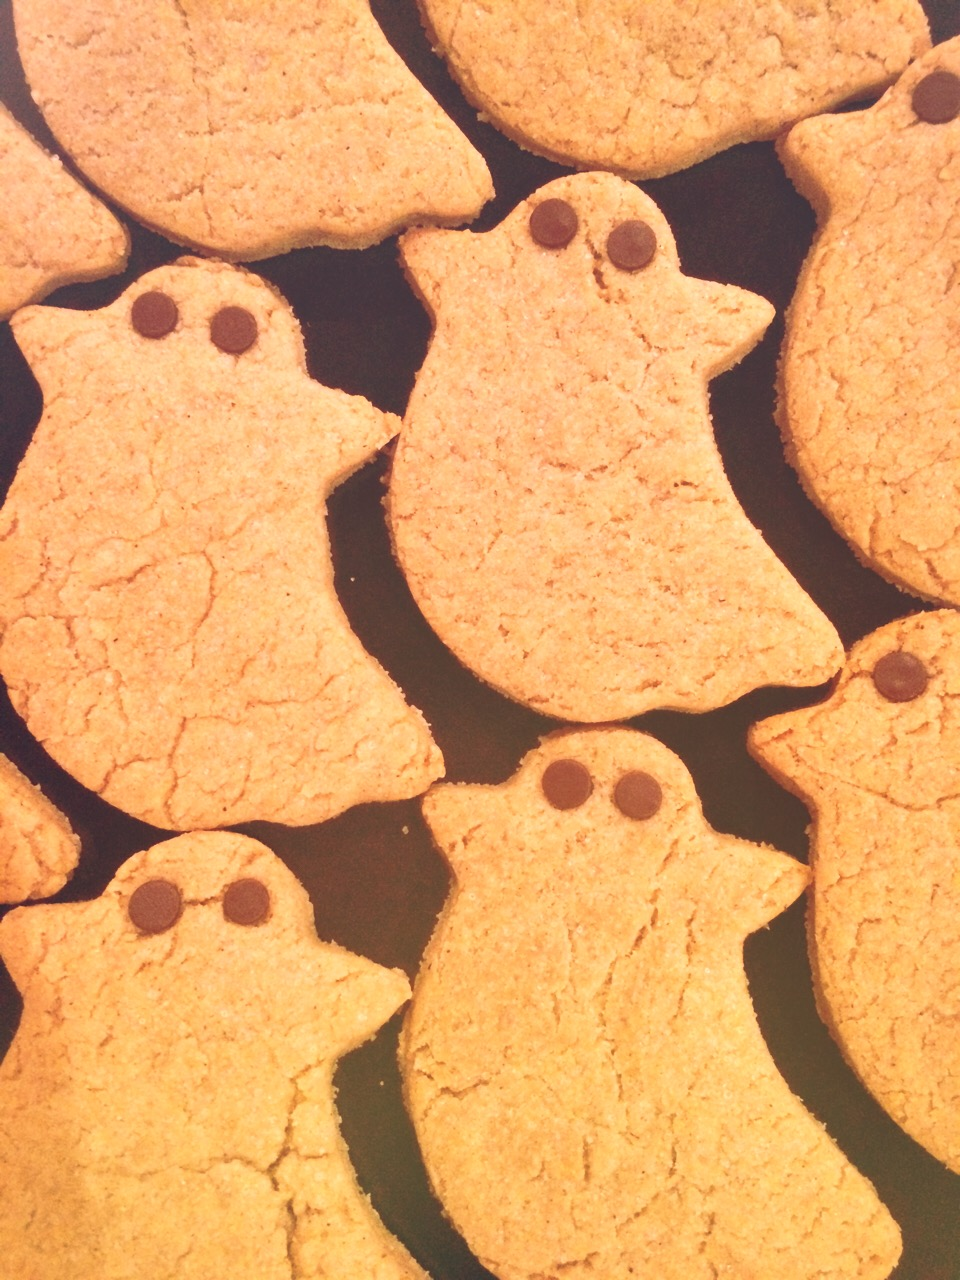 gourdy ghosts - ghost shaped pumpkin spice cookies with chocolate chip eyes VEGAN / GLUTENFREE october 2014